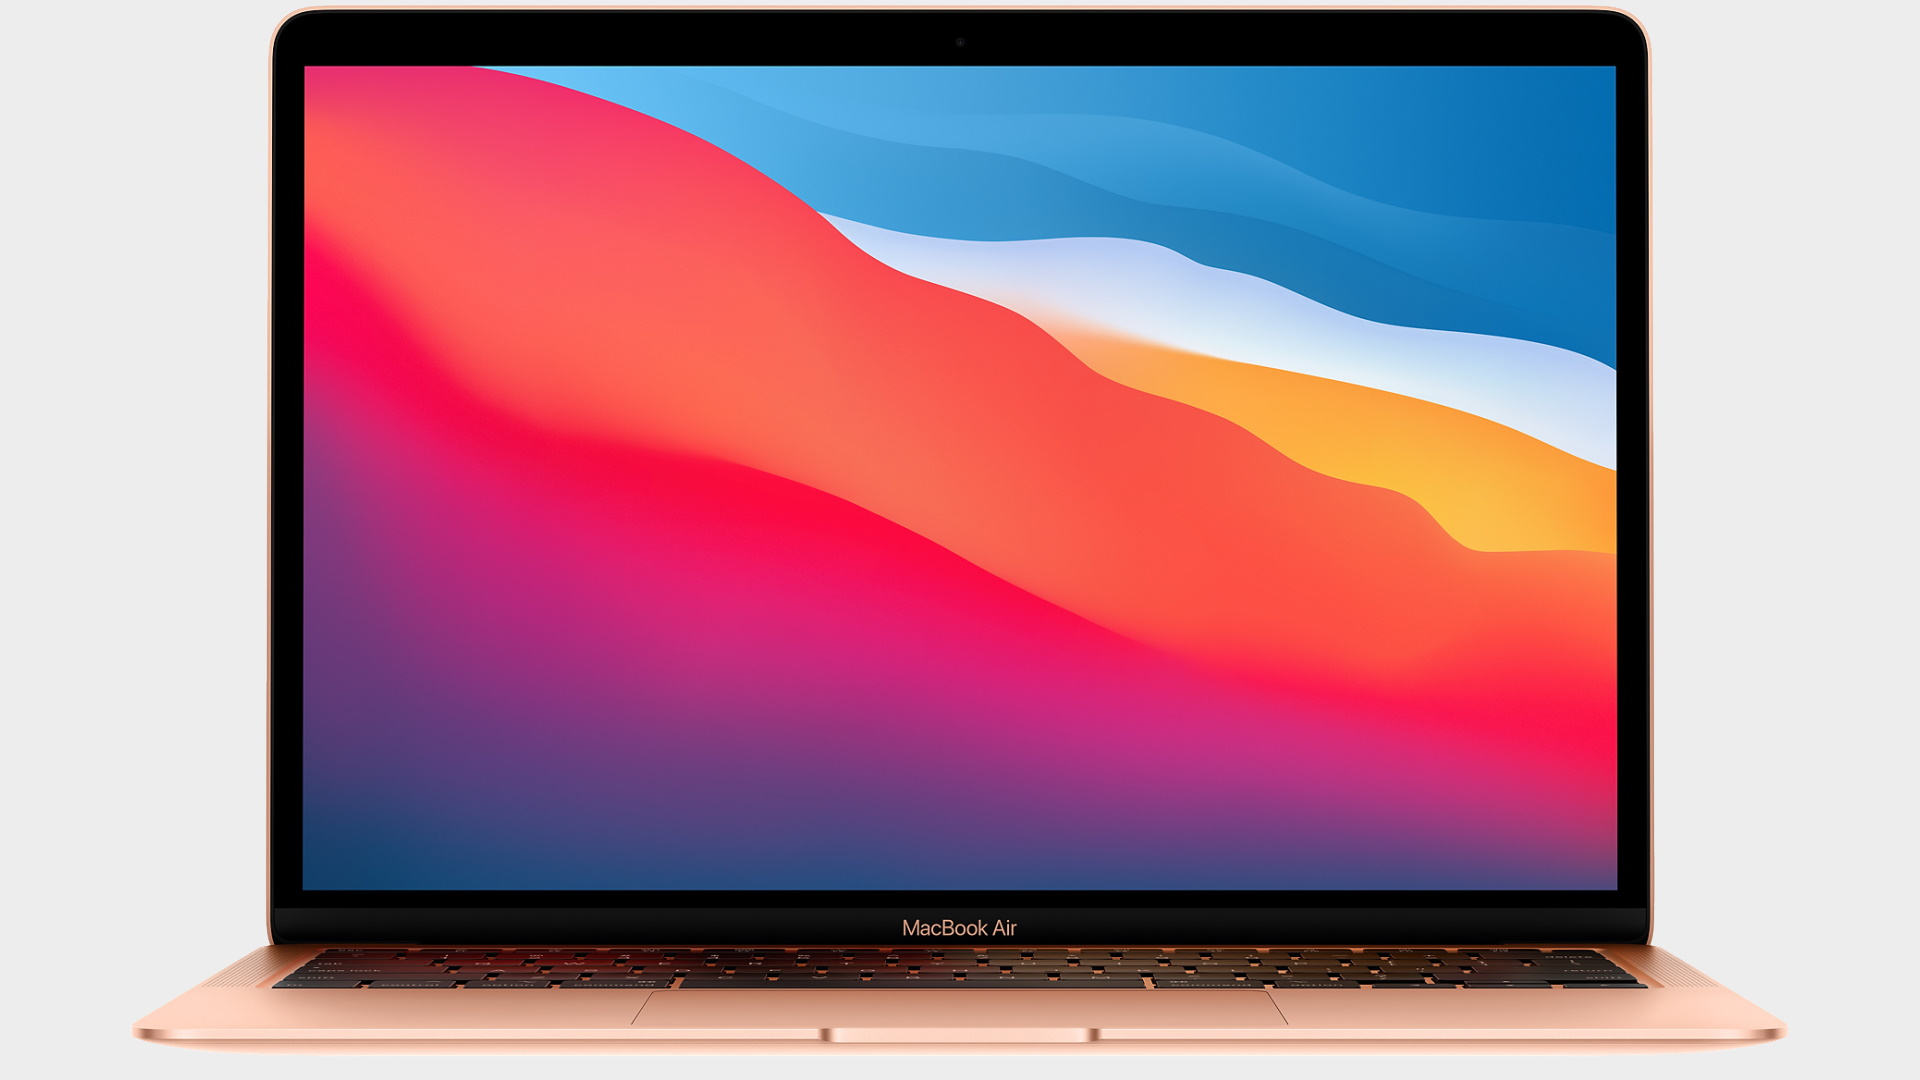 Apple M1 Macs appear to be chewing through their SSDs